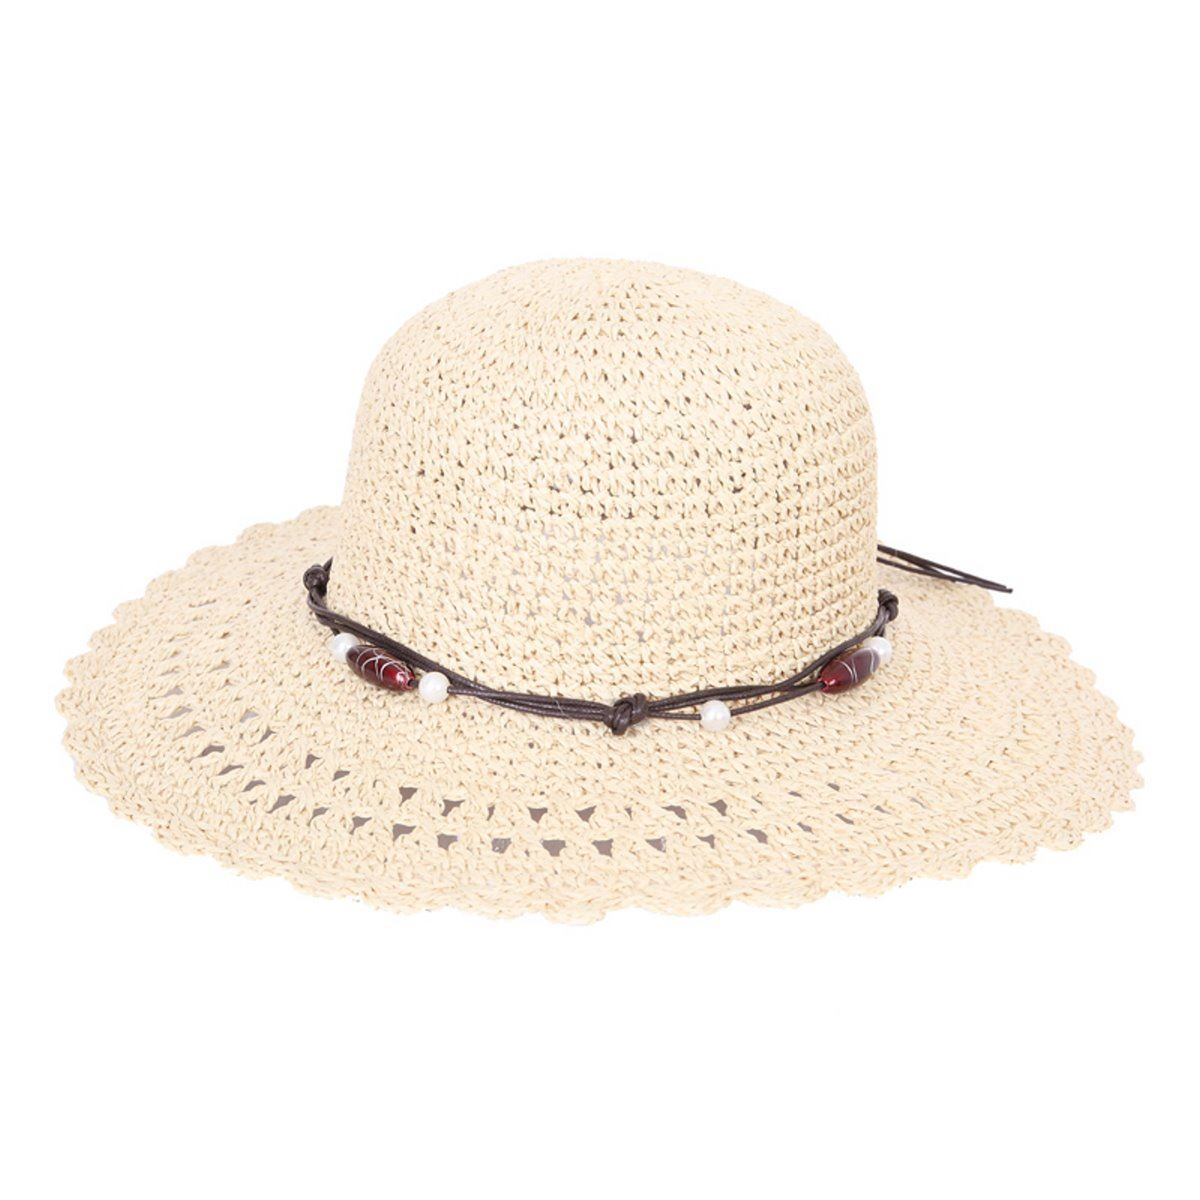 Ladies Crushable Hat Packable Summer Sun Holiday Floppy Straw Hat Bouces Back